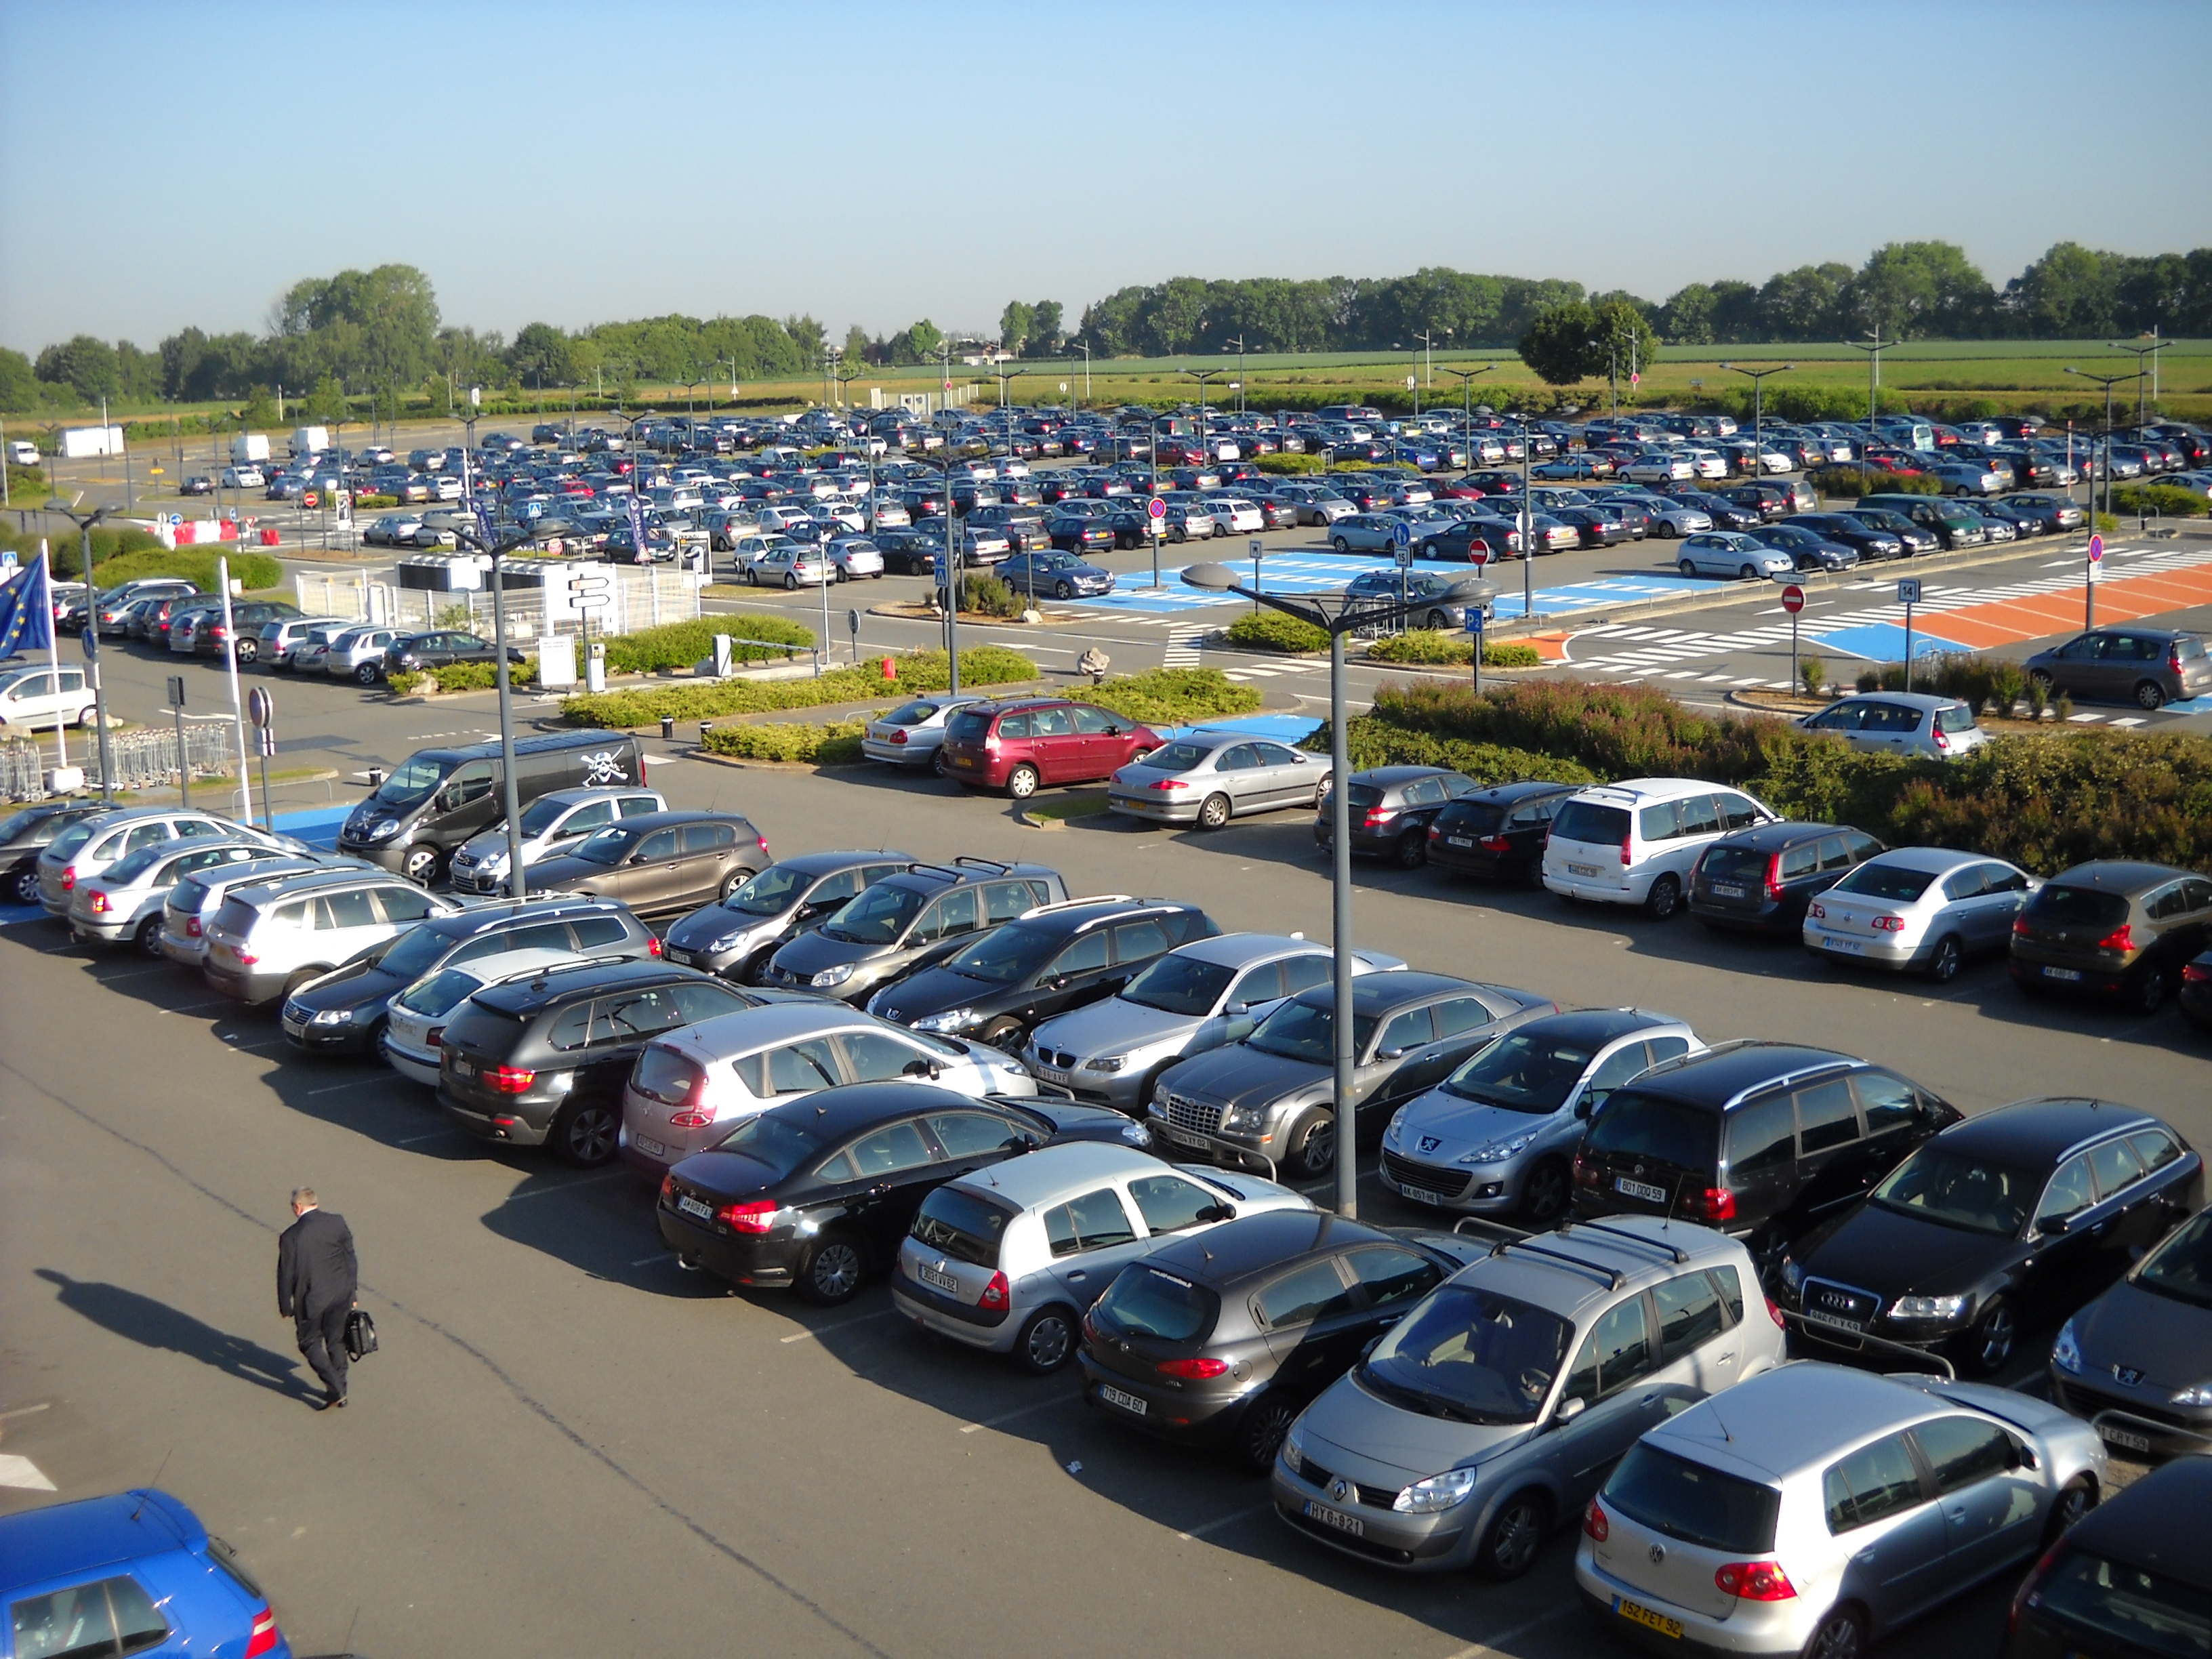 Schiphol Airport Car Rental Parking